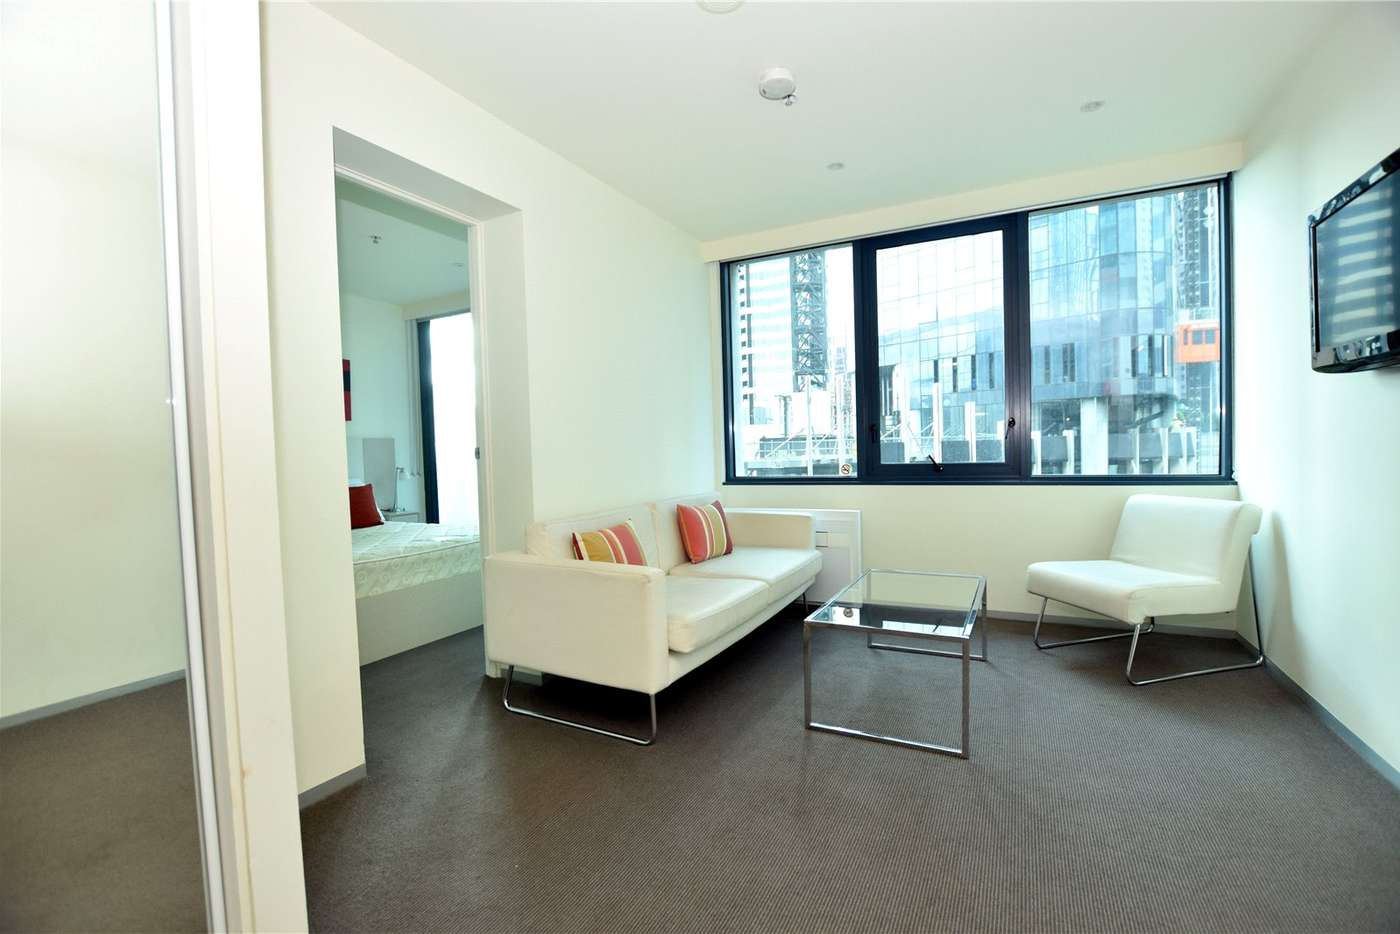 Main view of Homely studio listing, 608/181 ABeckett Street, Melbourne VIC 3000